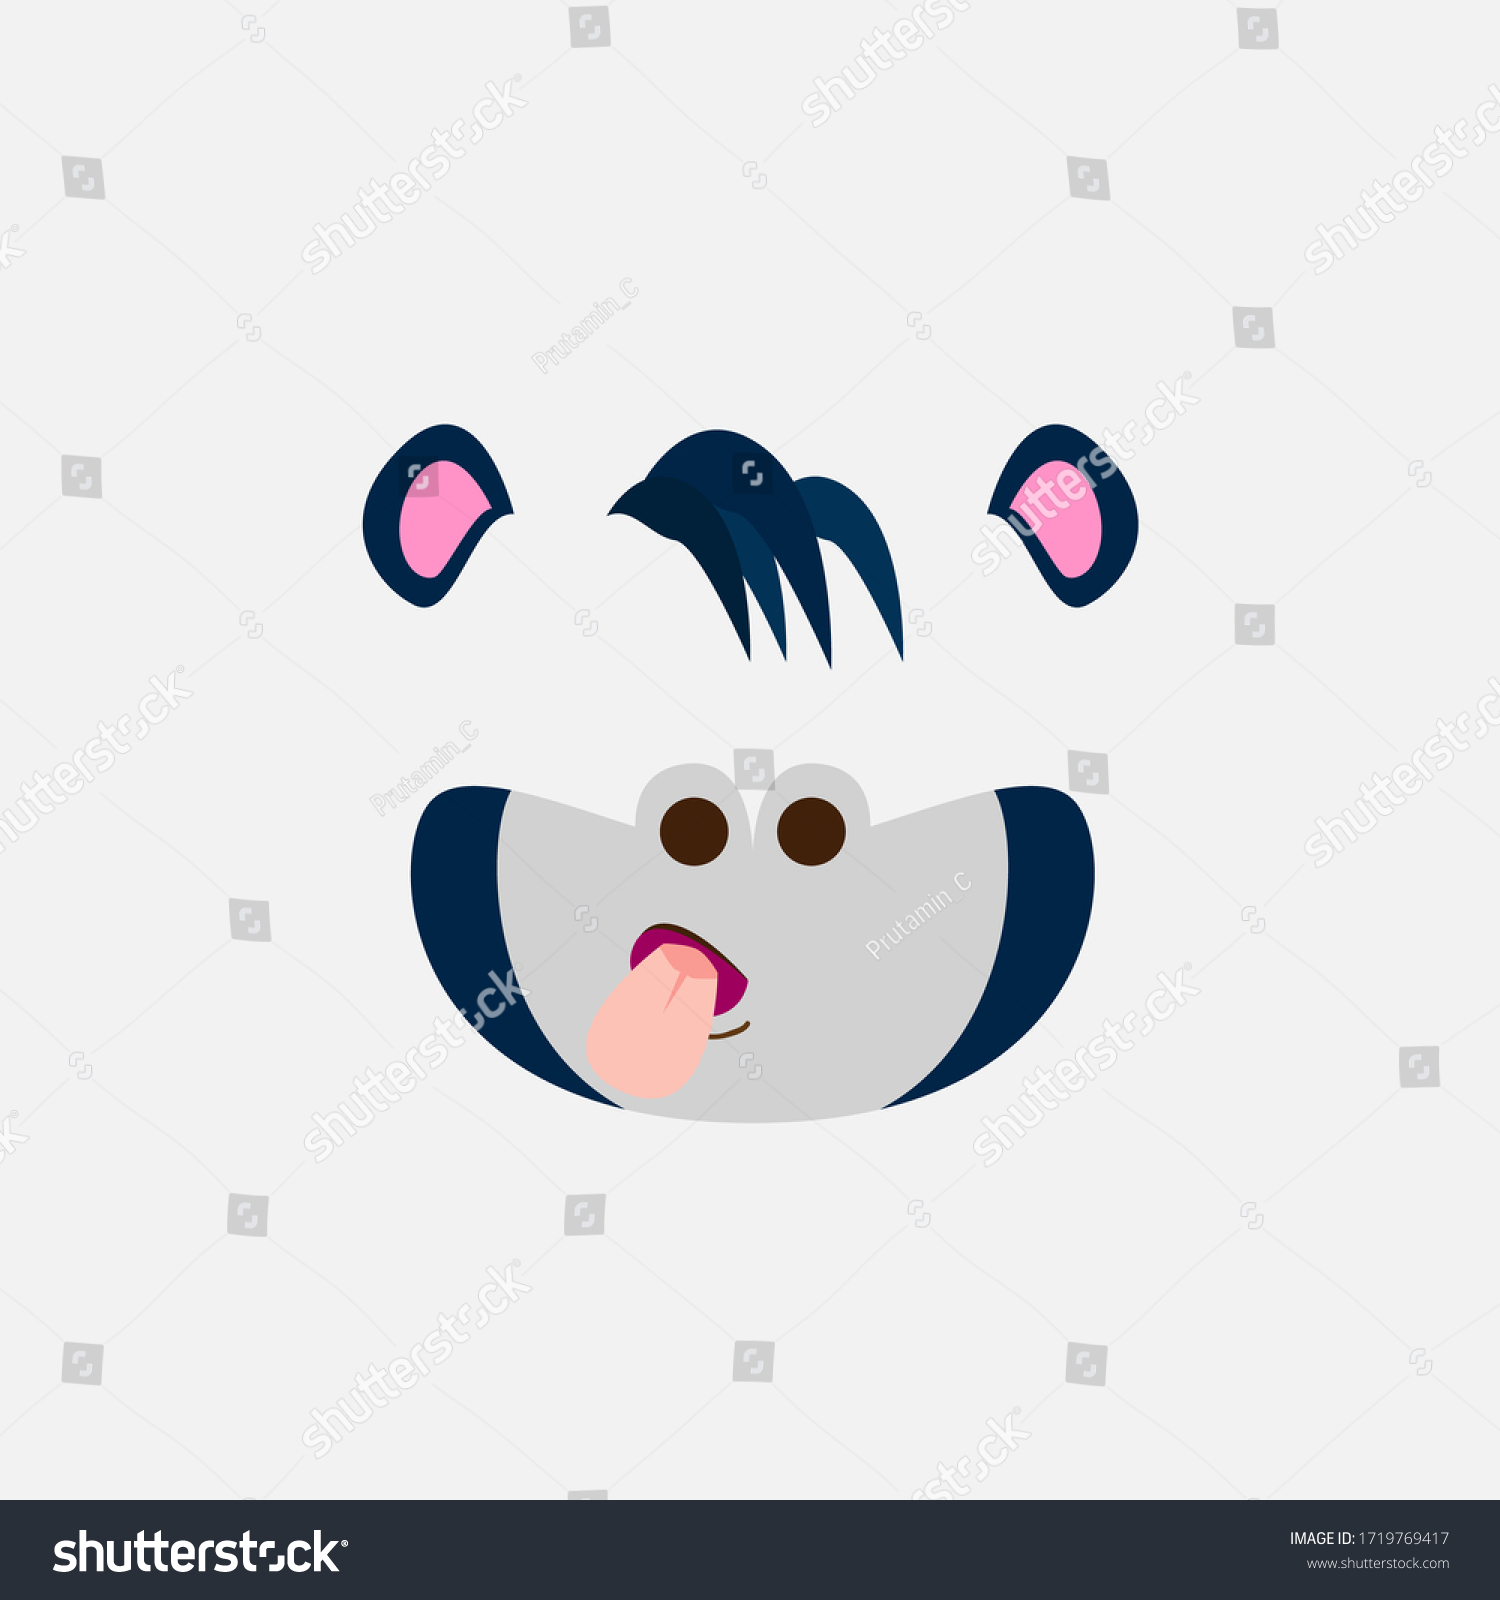 gorillas funny mask for kids party, vector design illustration